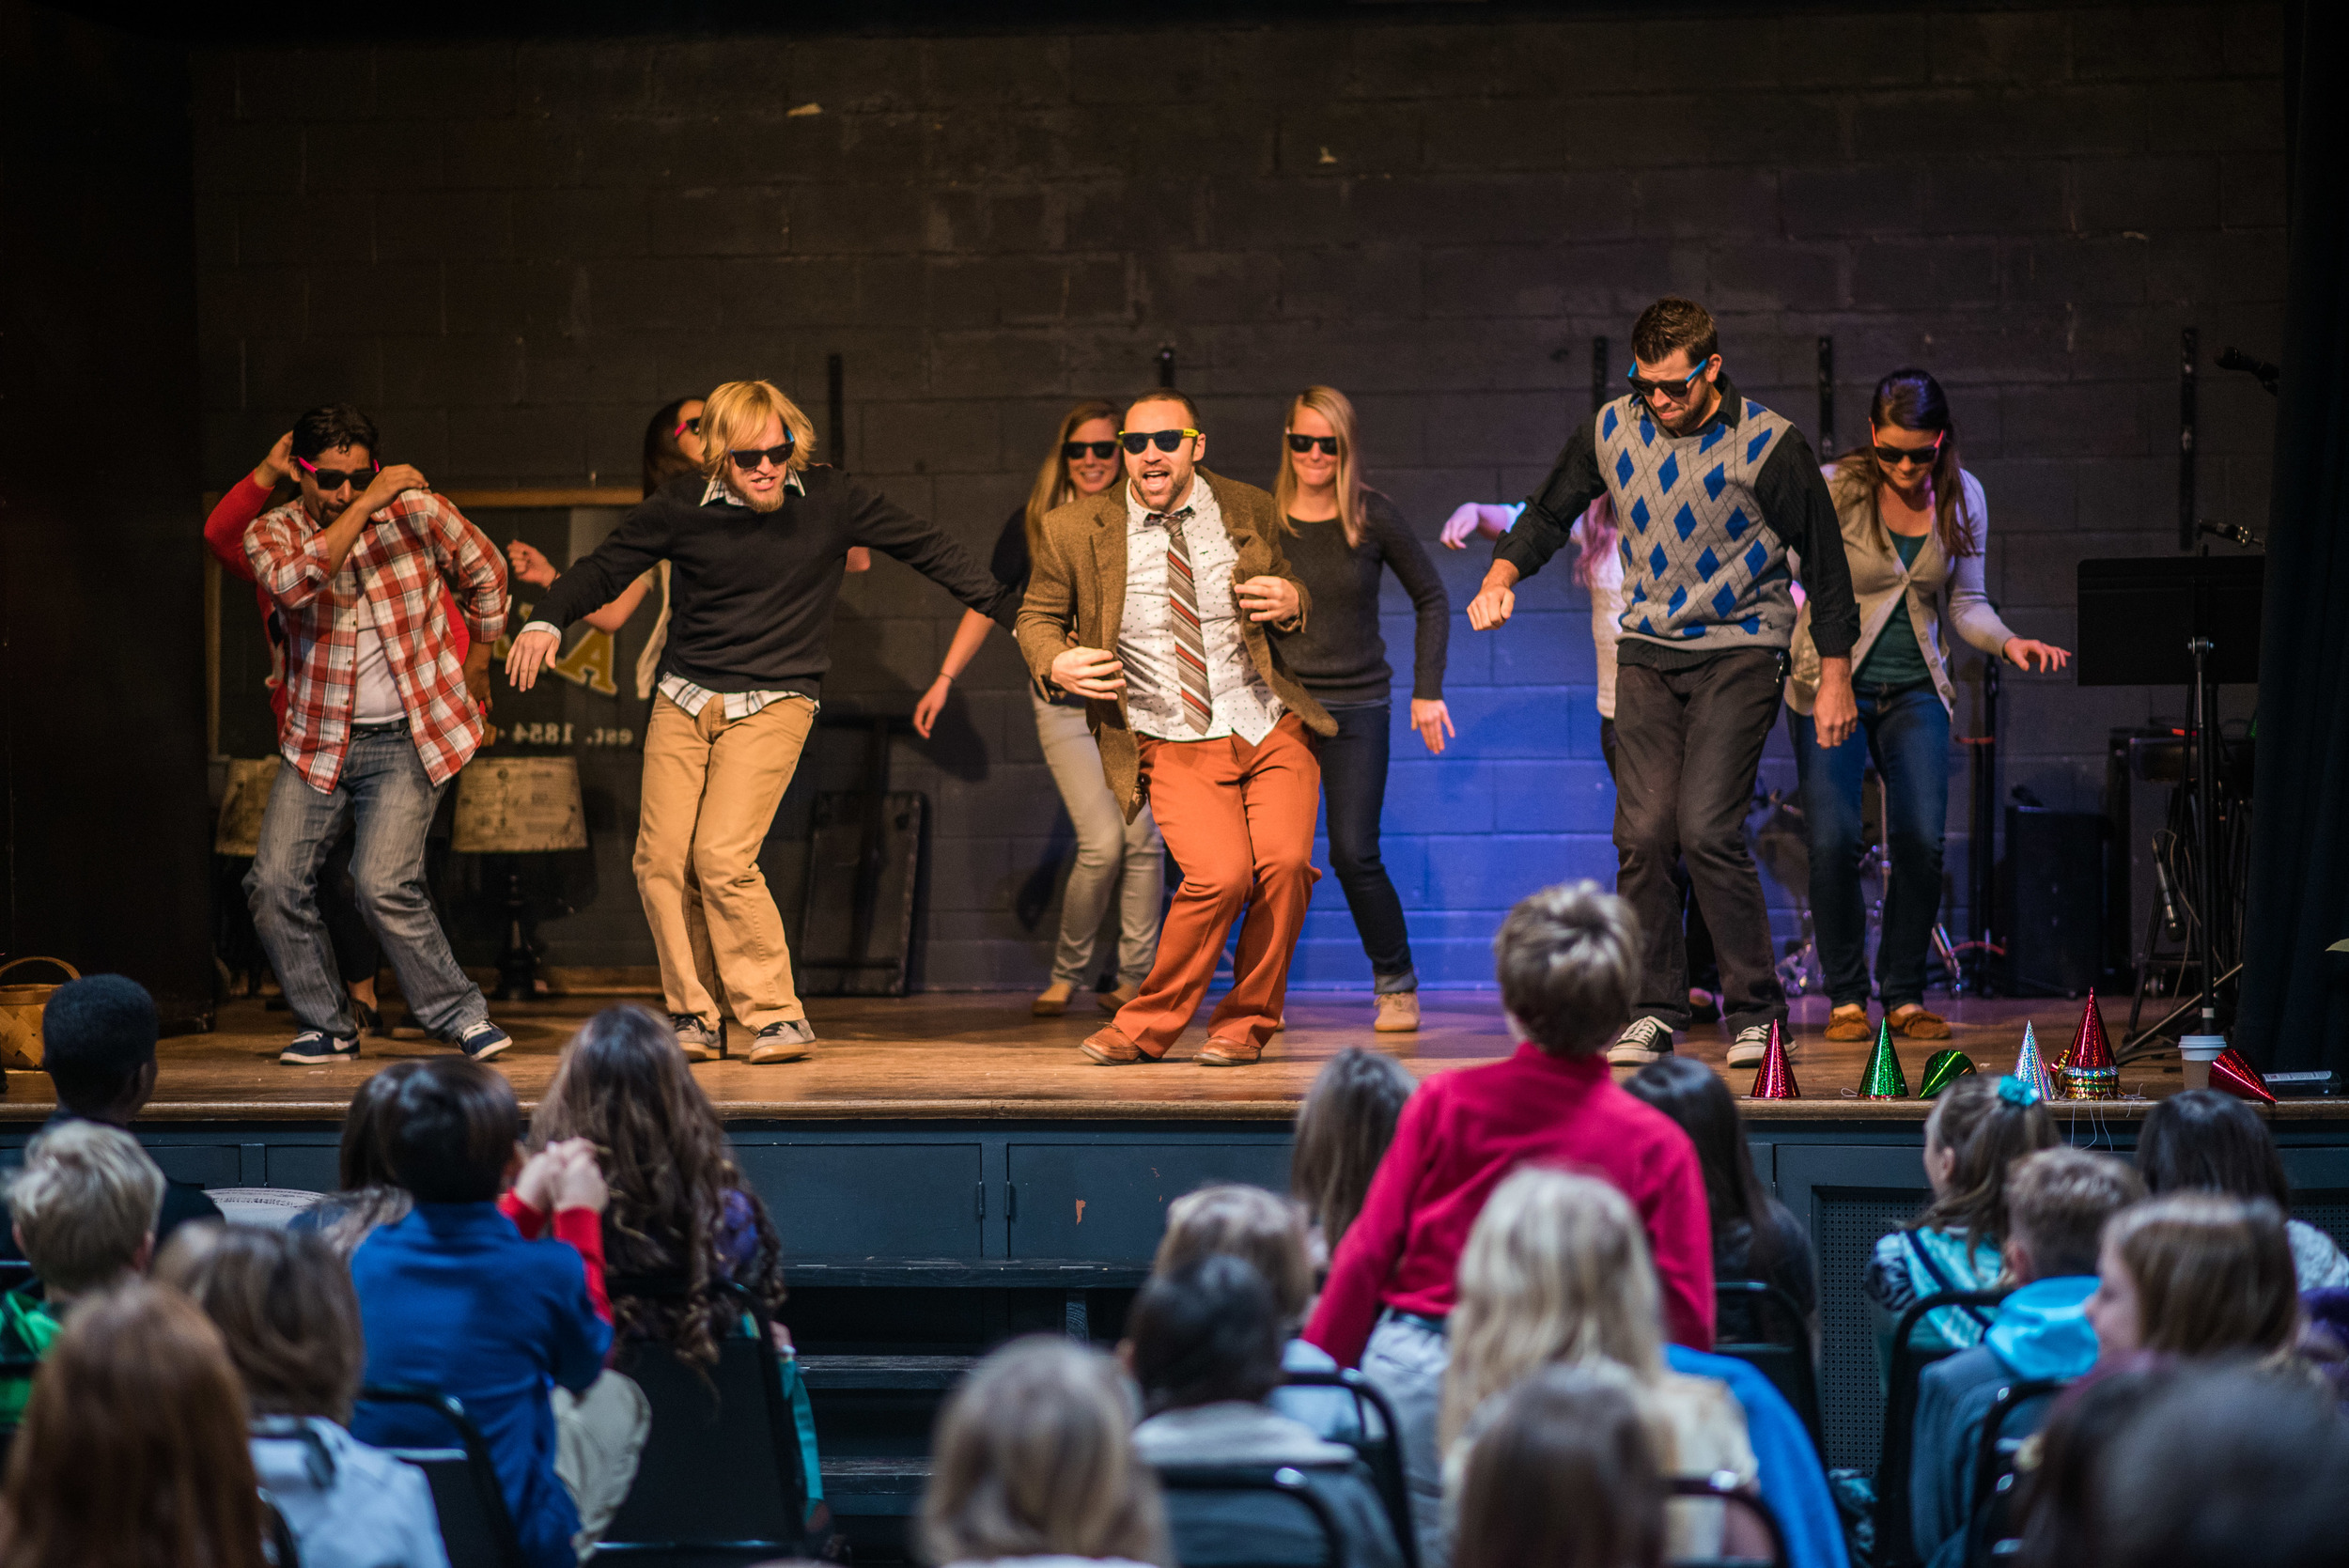 Teachers interrupted the year's first assembly with a flash mob! Mr. Duffy surprised everyone by turning the introductory speech into a Whip/Nae Nae dance party! Students loved the surprise, especially seeing Principal Johnson take charge of the stage for the final pose.